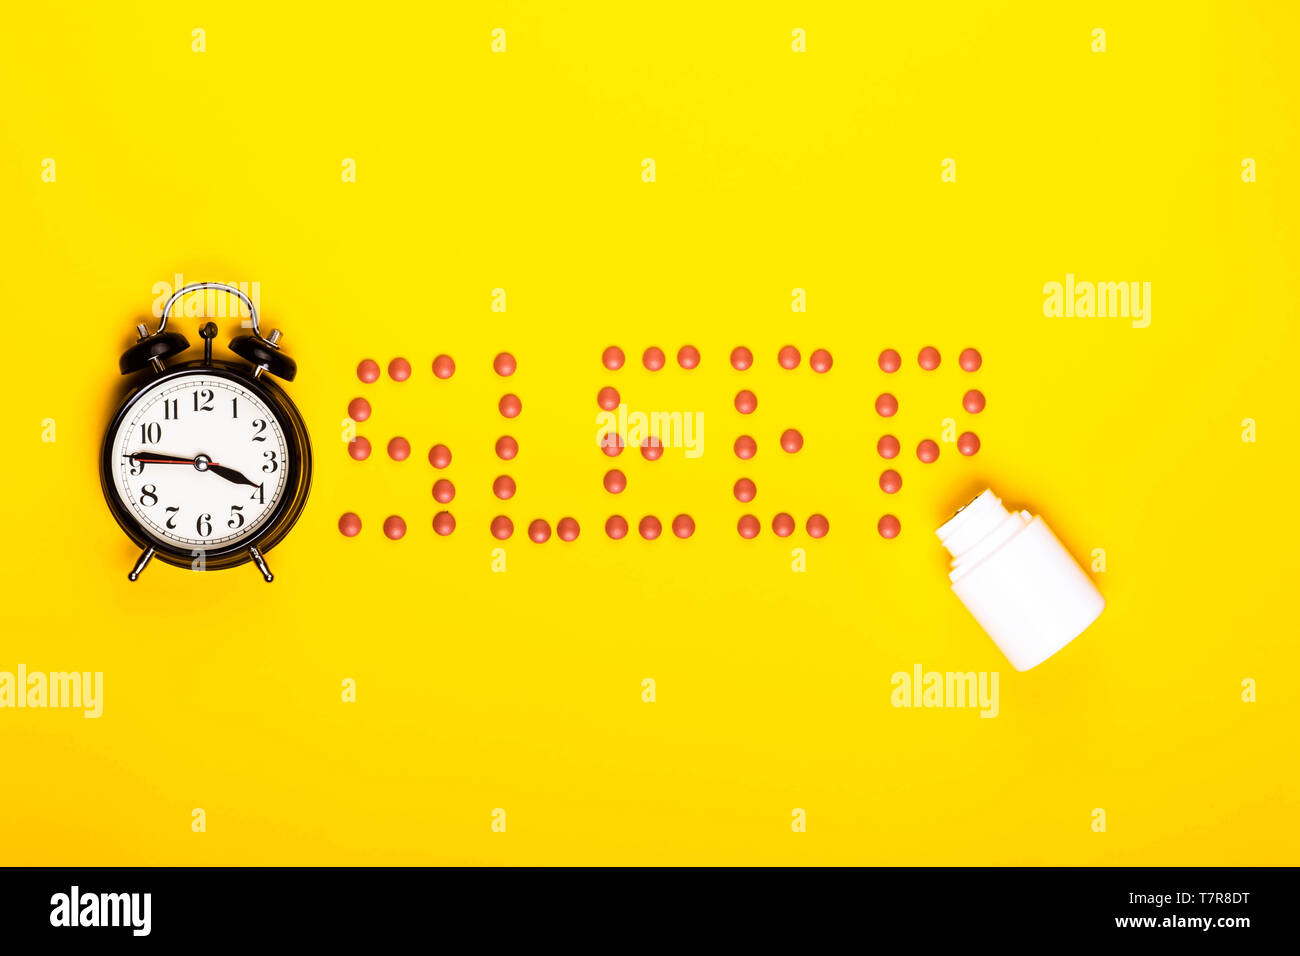 Sleep concept showing sleeping pills and an alarm clock on a yellow background - Stock Image